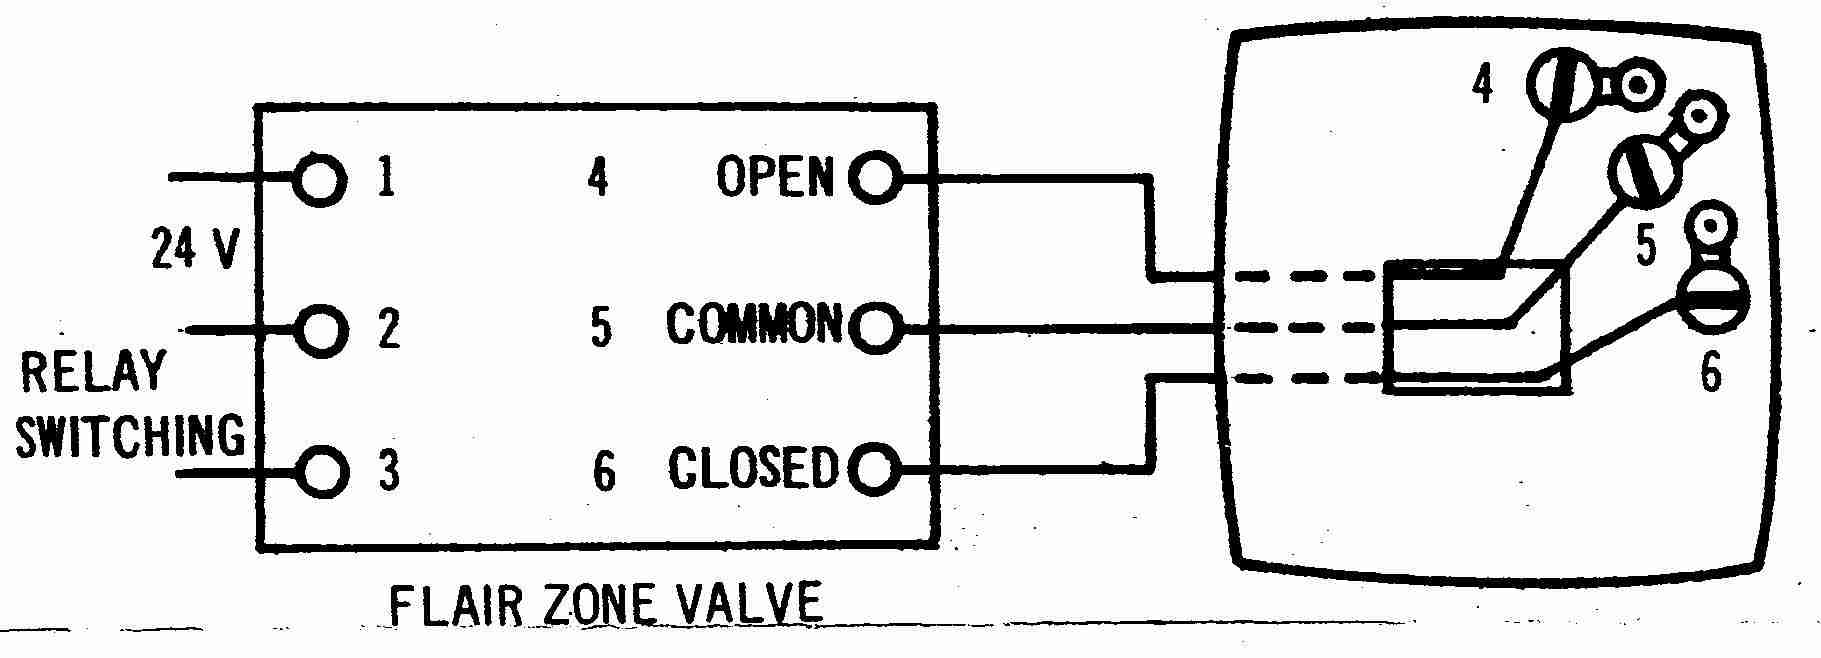 zone valve wiring installation \u0026 instructions guide to Asco Transfer Switch Wiring Diagram